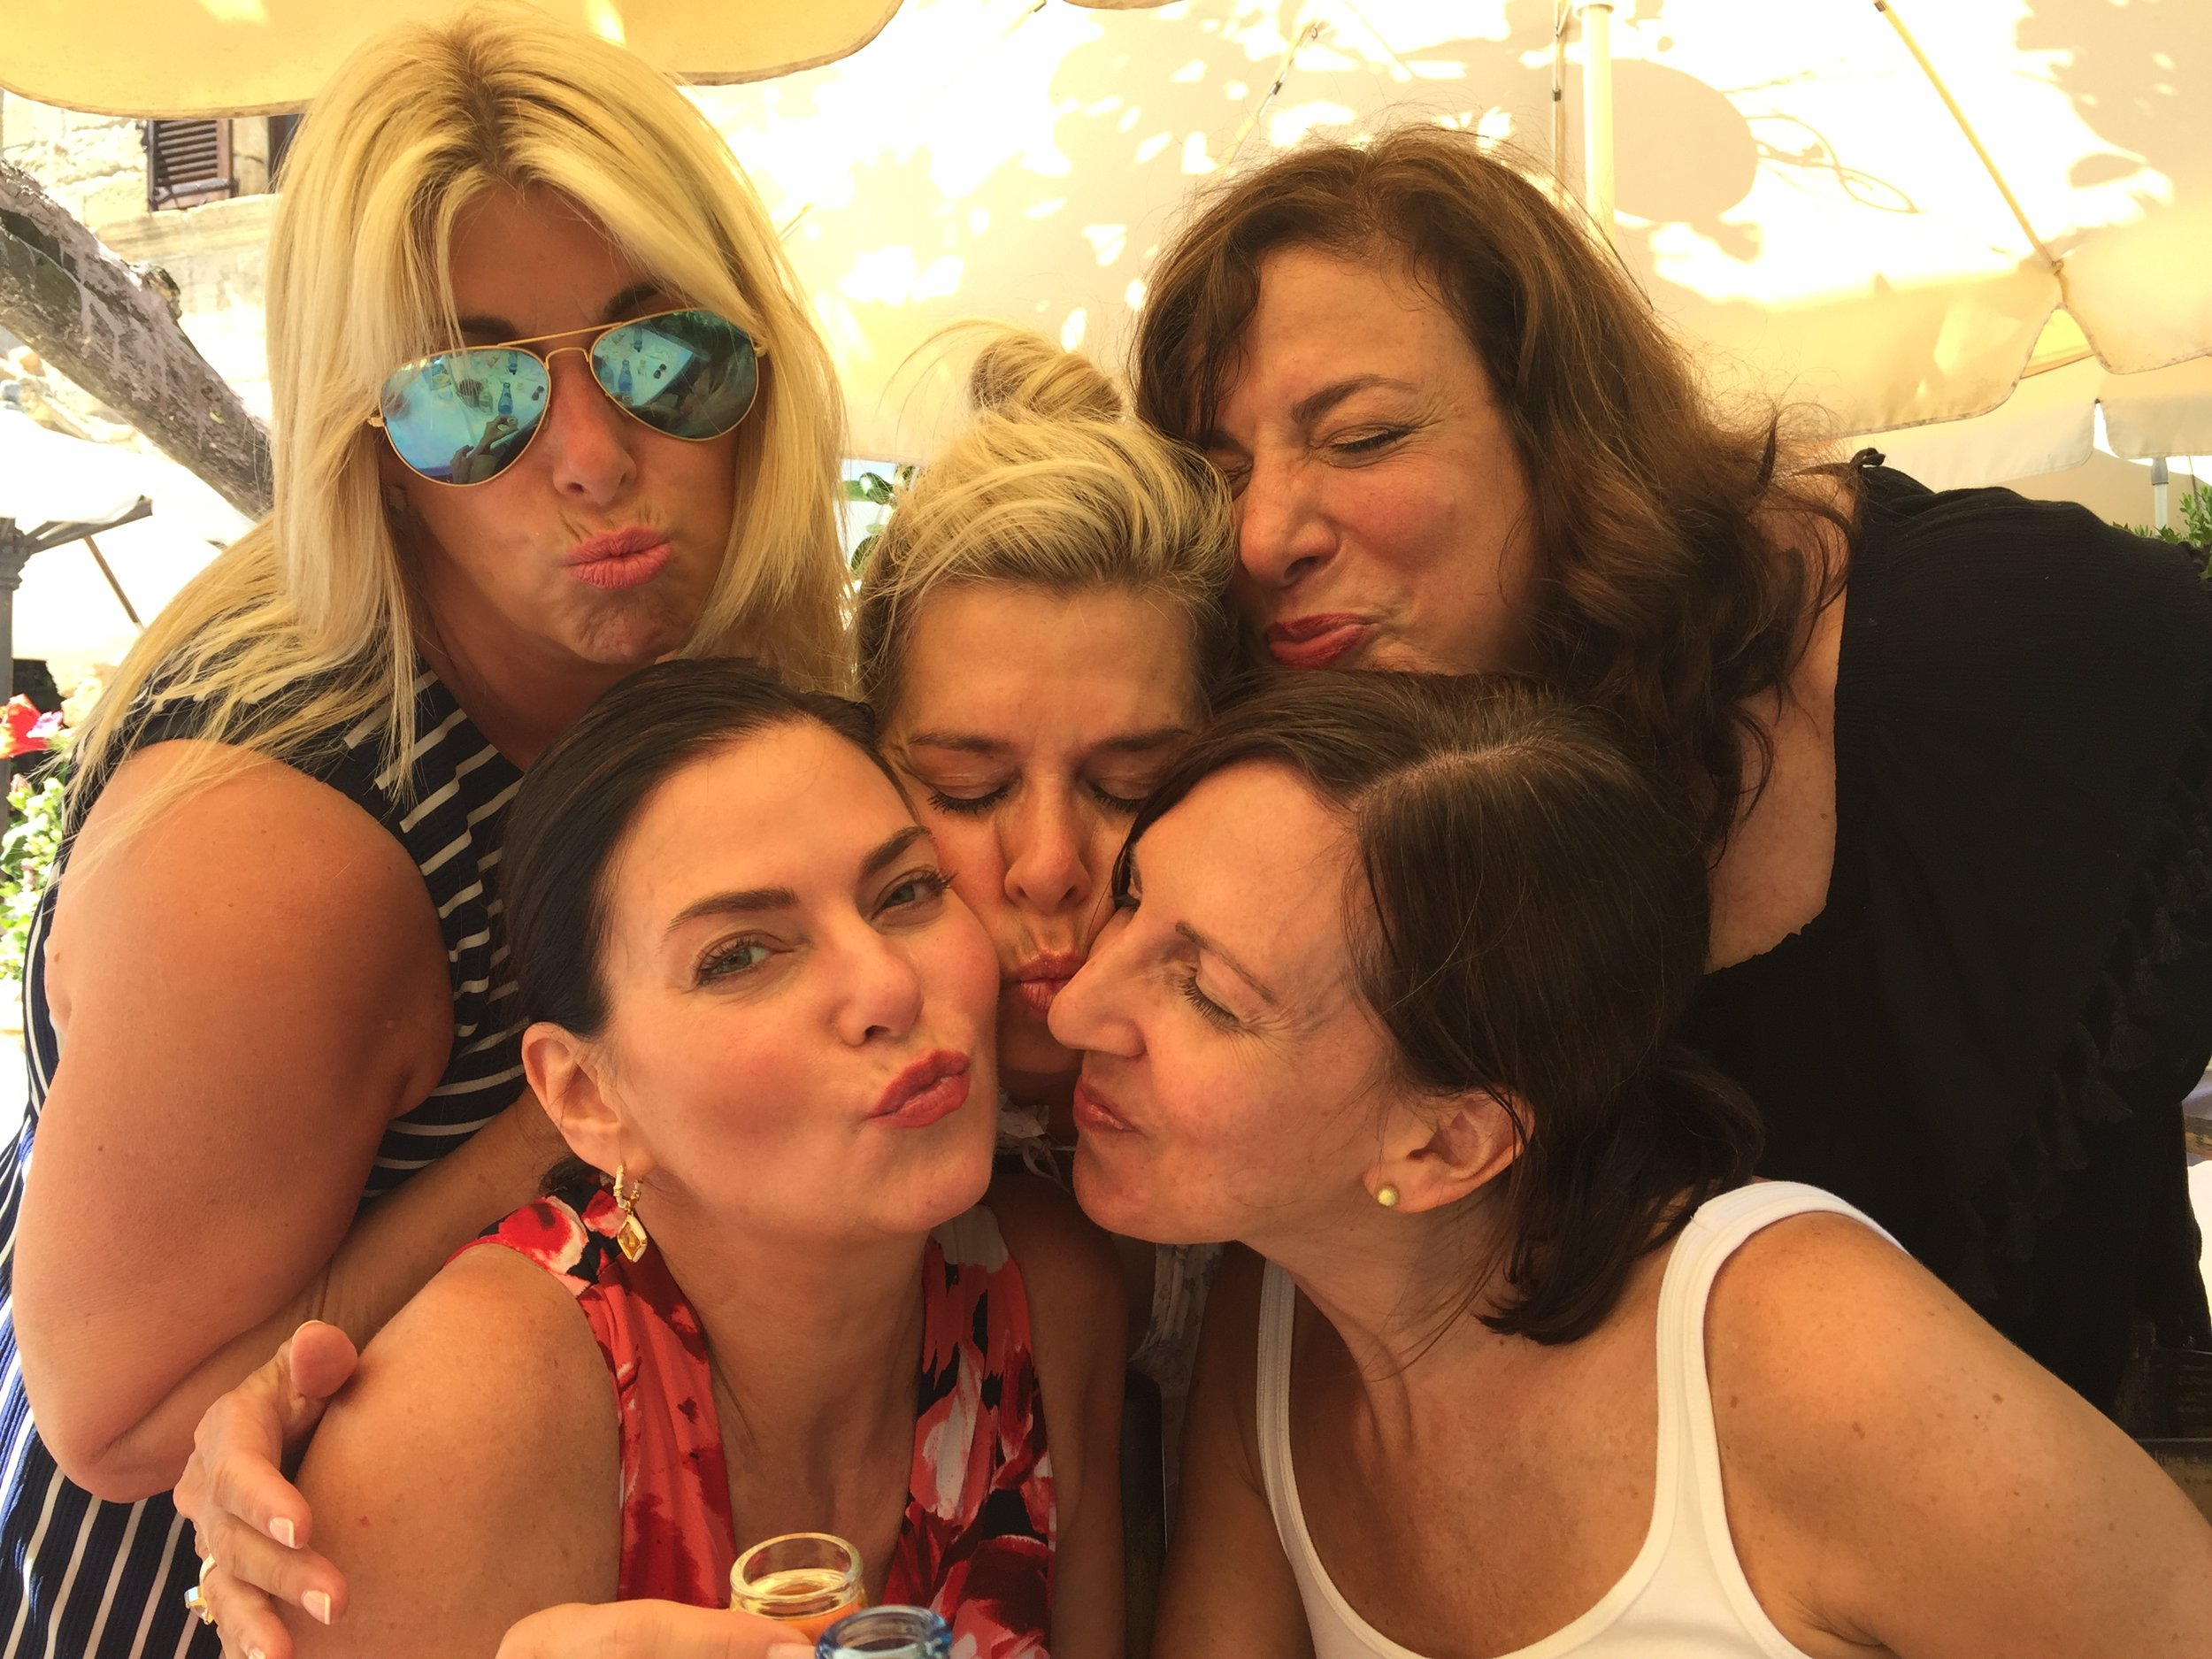 Group Kisses